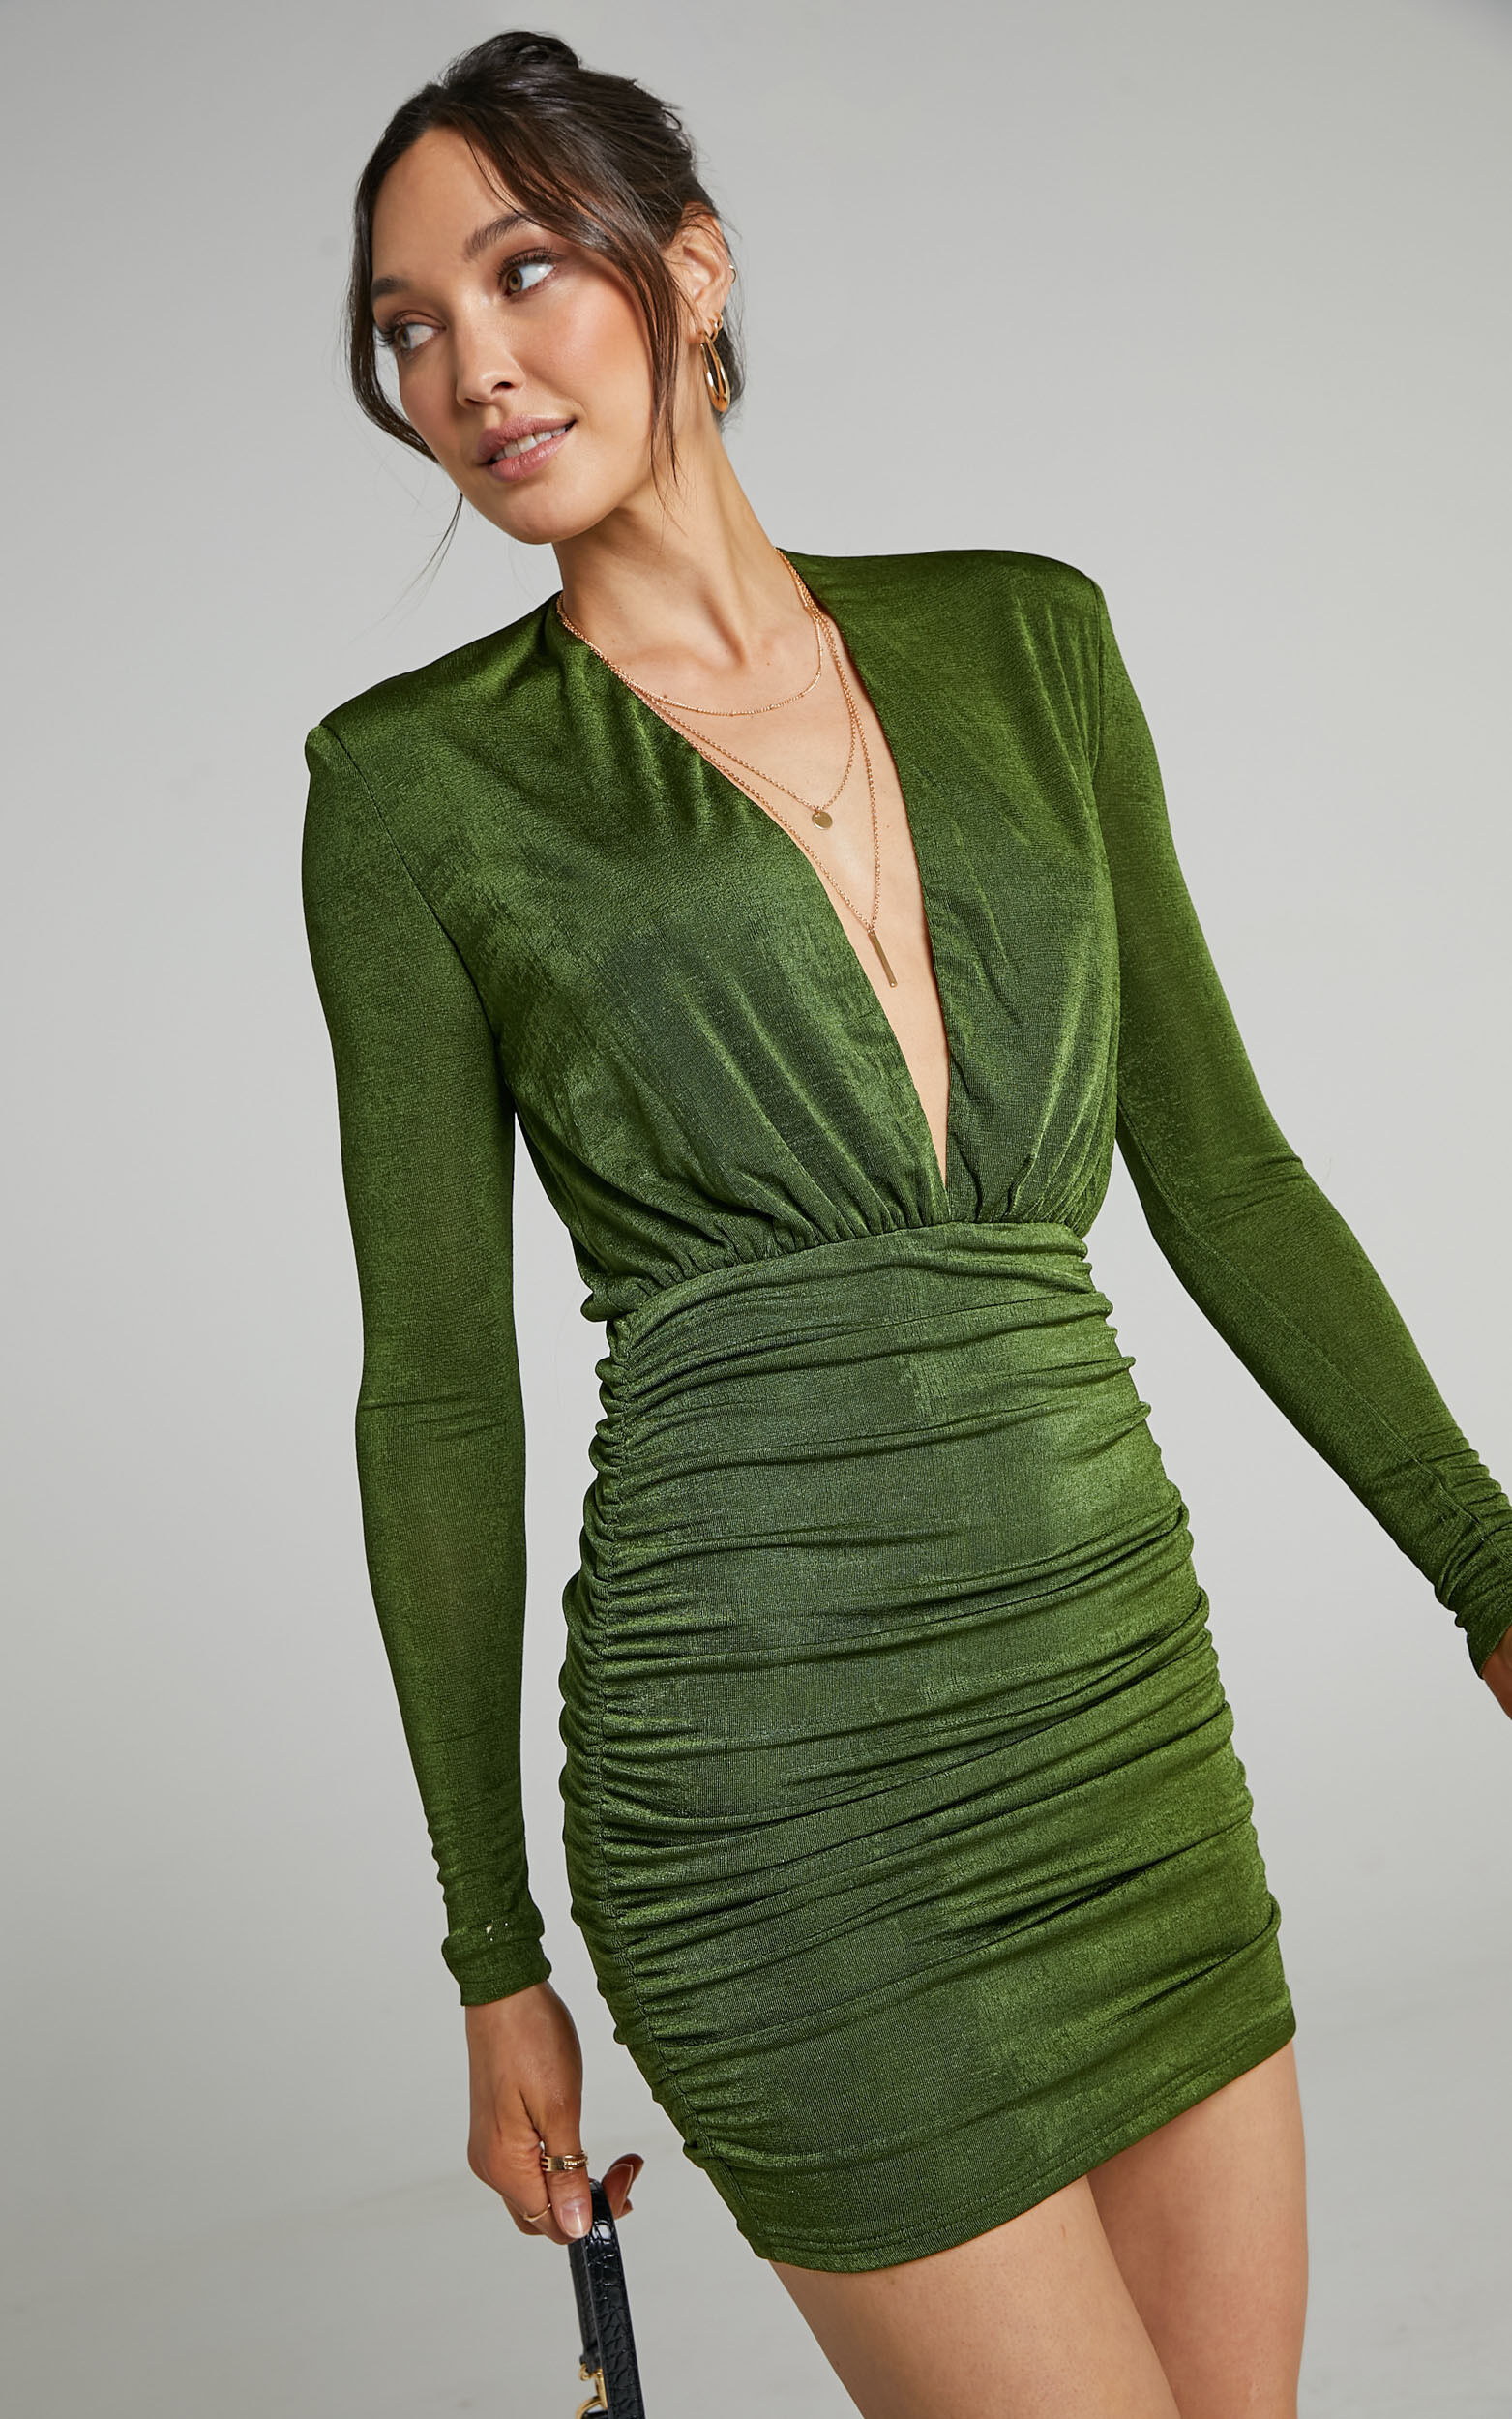 Kaitie Mini Deep V Open Front Ruched Dress in Khaki - 06, GRN2, super-hi-res image number null